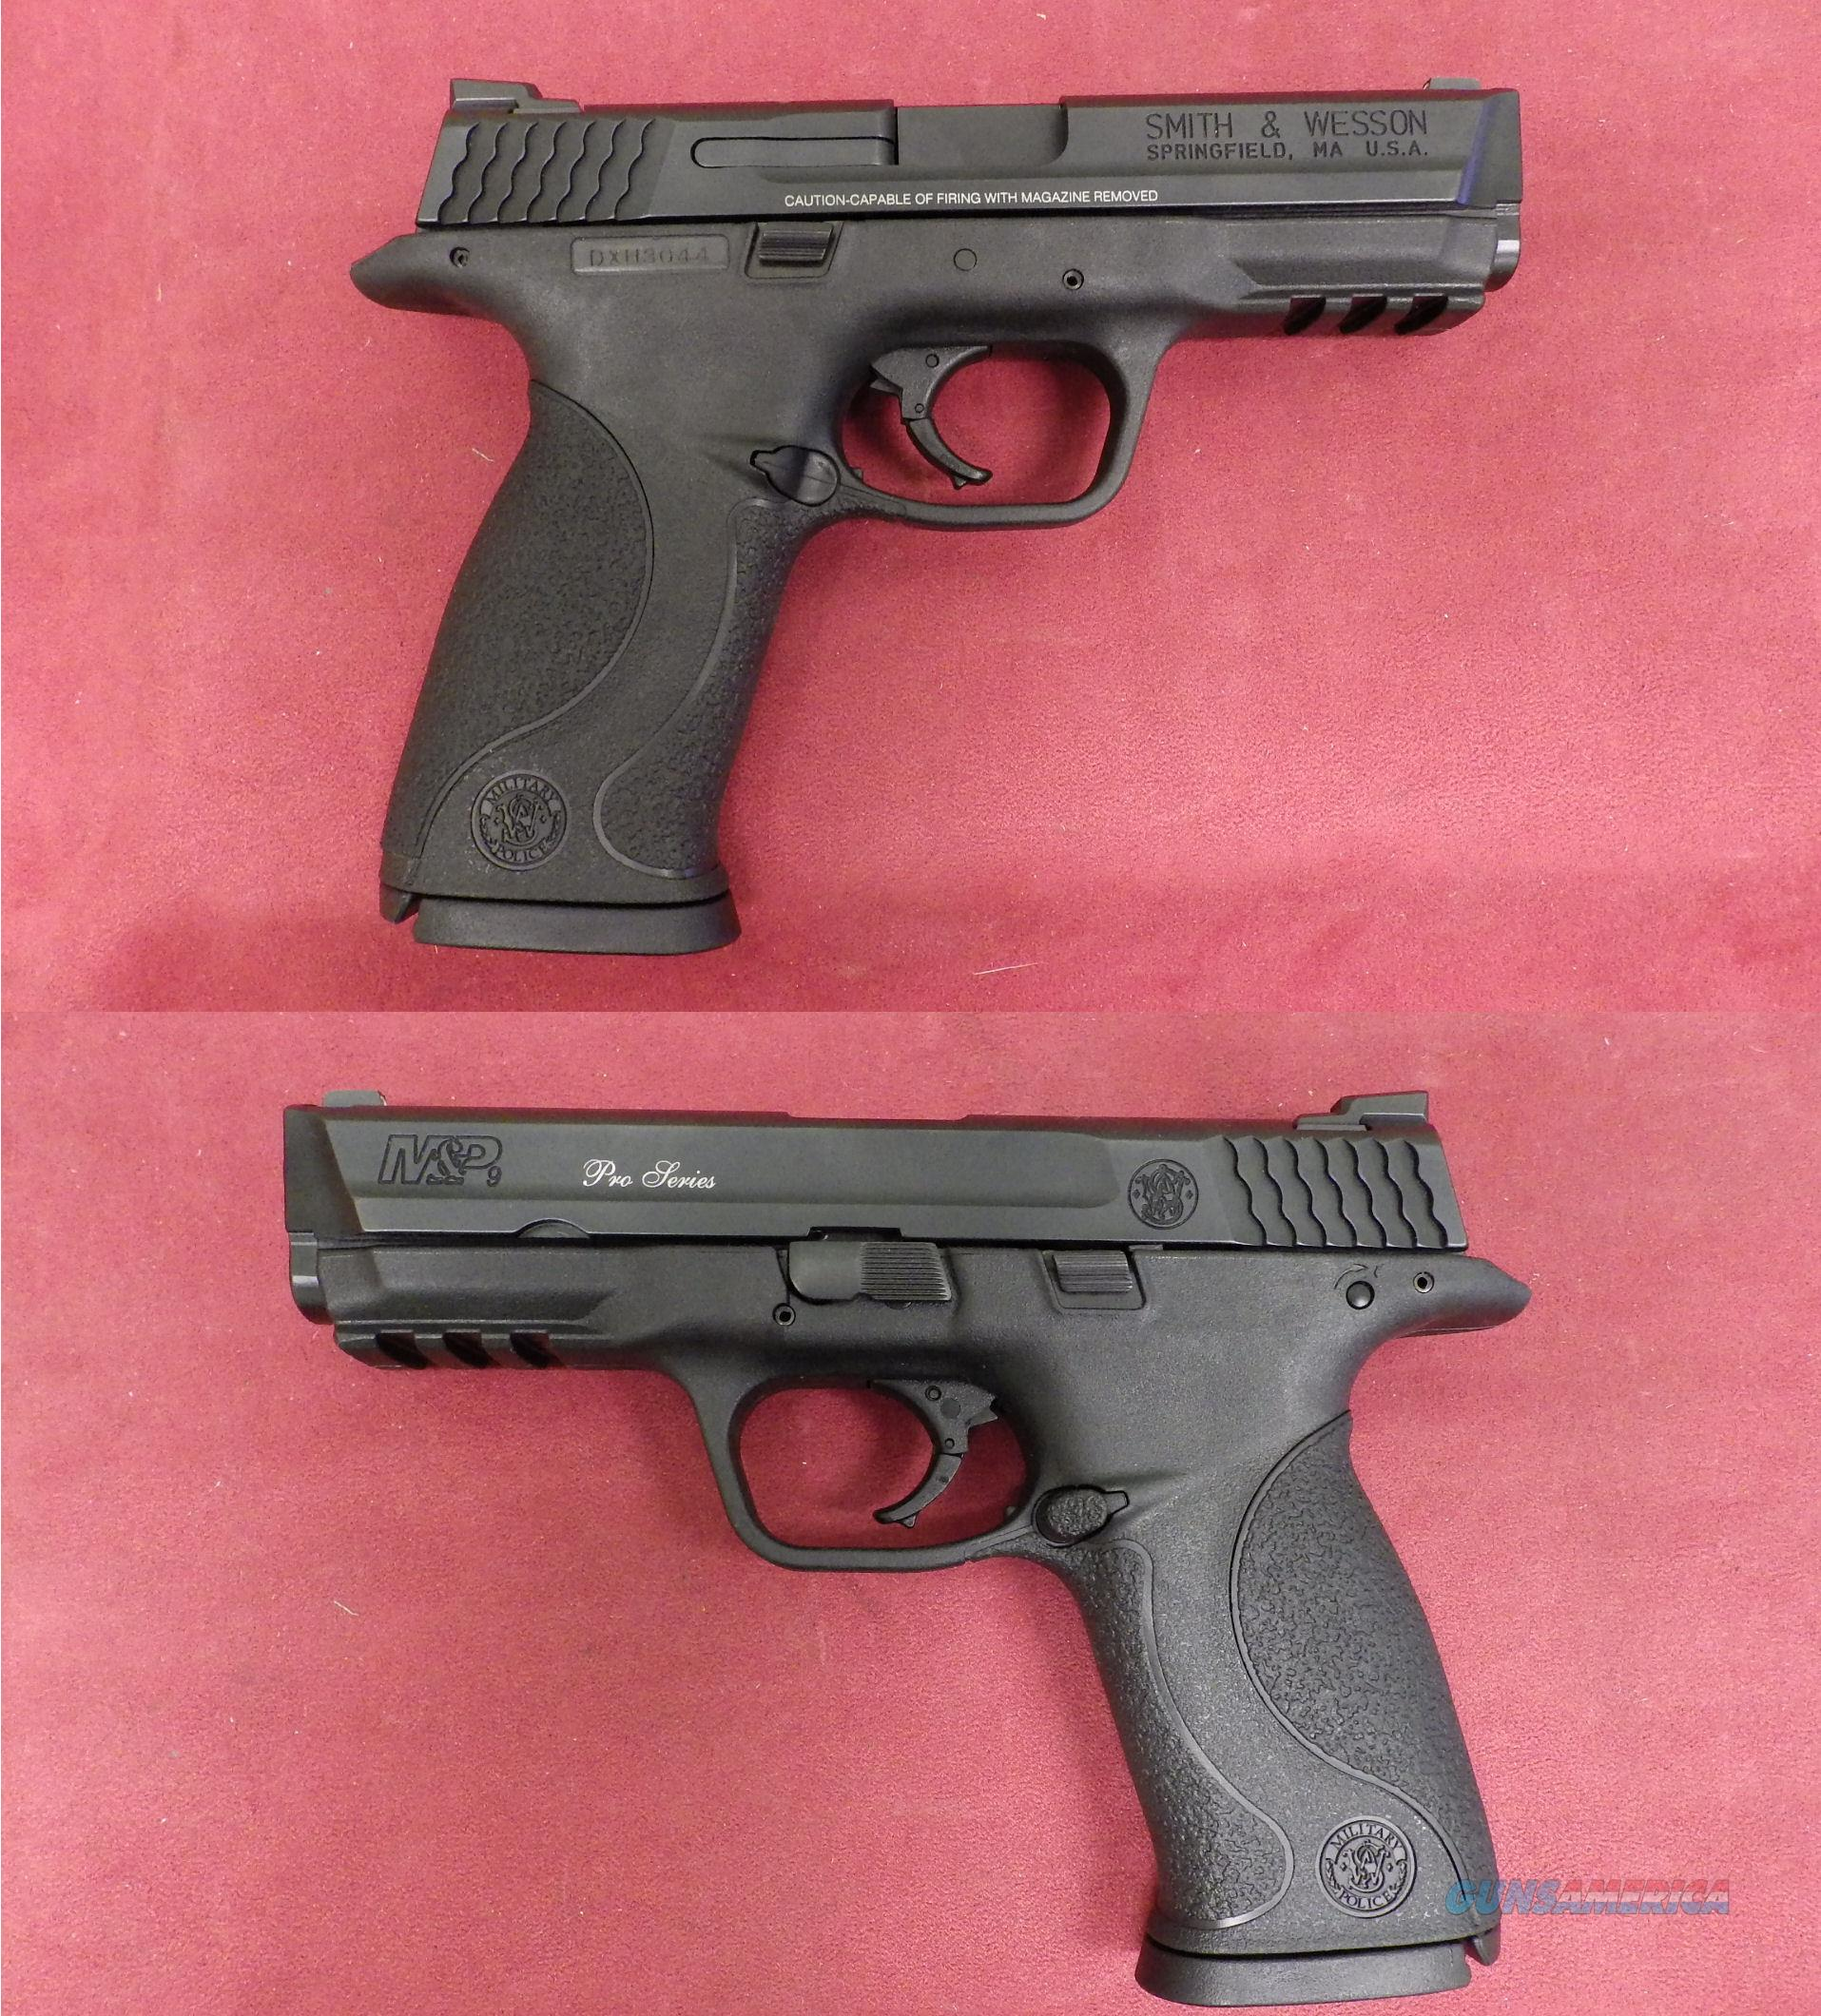 Smith & Wesson Pro Series 9mm  Guns > Pistols > Smith & Wesson Pistols - Autos > Polymer Frame